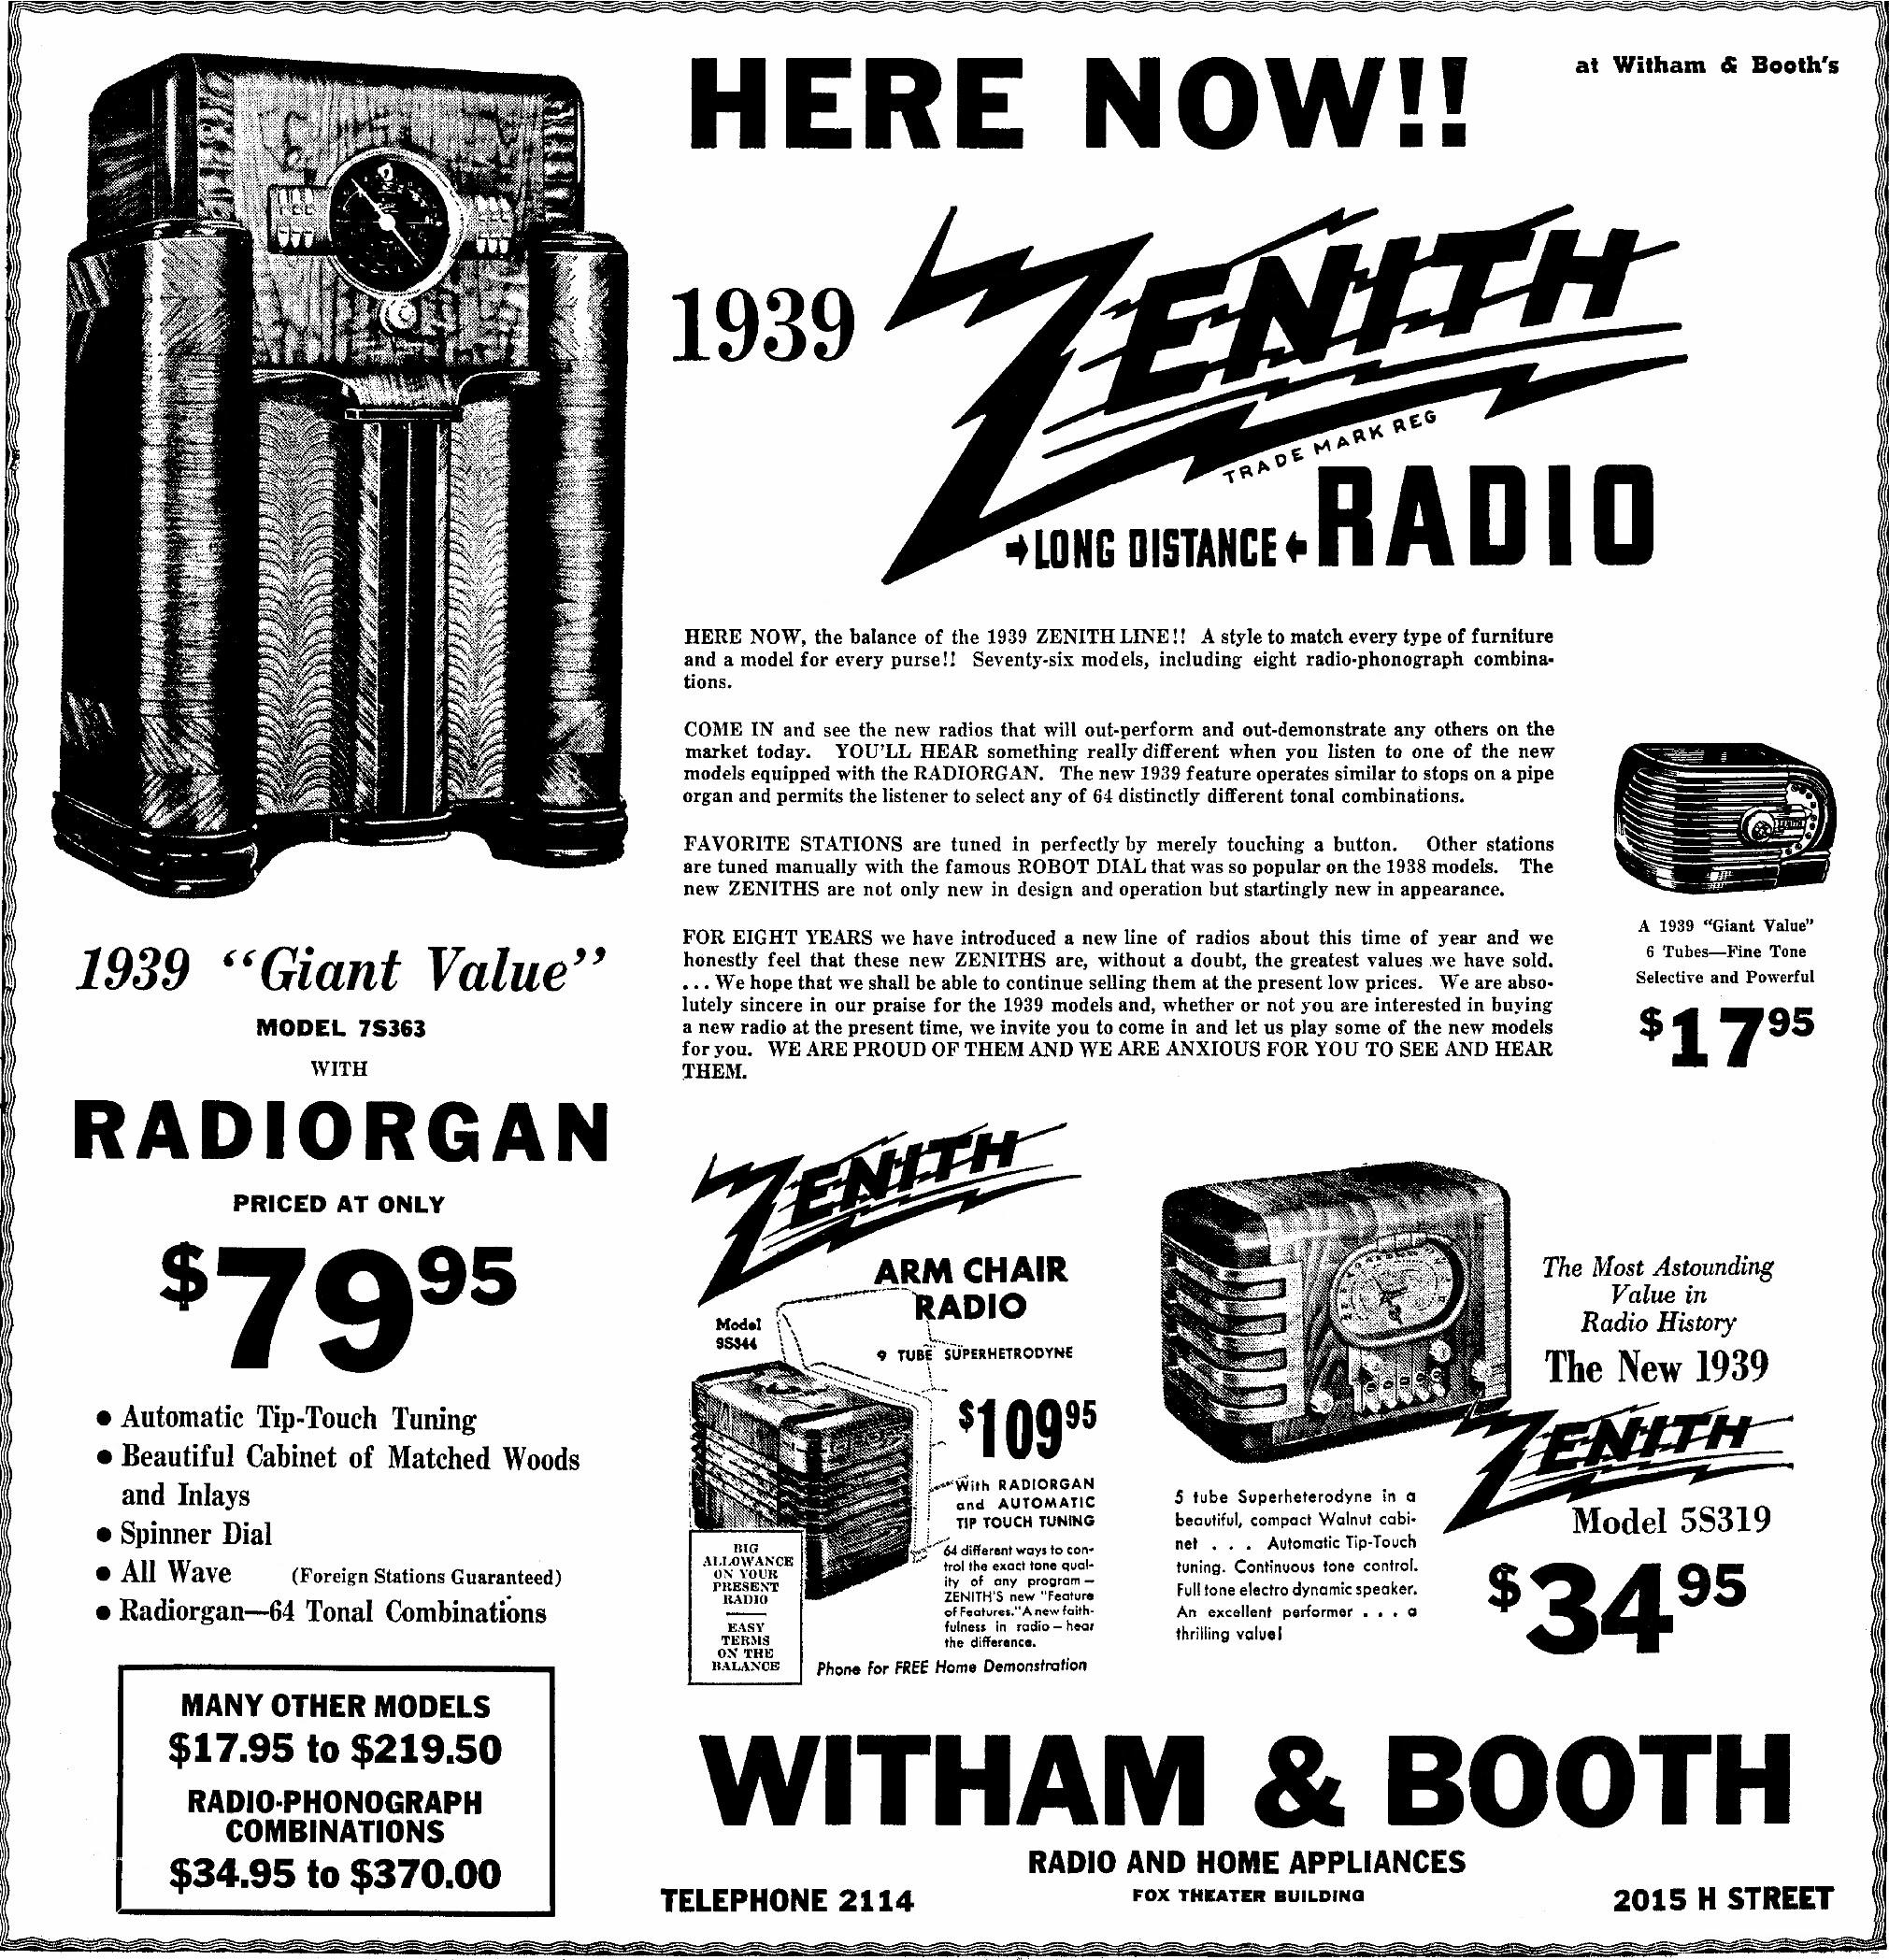 Zenith Model 7s363 Console Radio 1939. July 30th 1938 Bakersfield Ca. Wiring. Zenith Tube Radio Schematics 1938 At Scoala.co